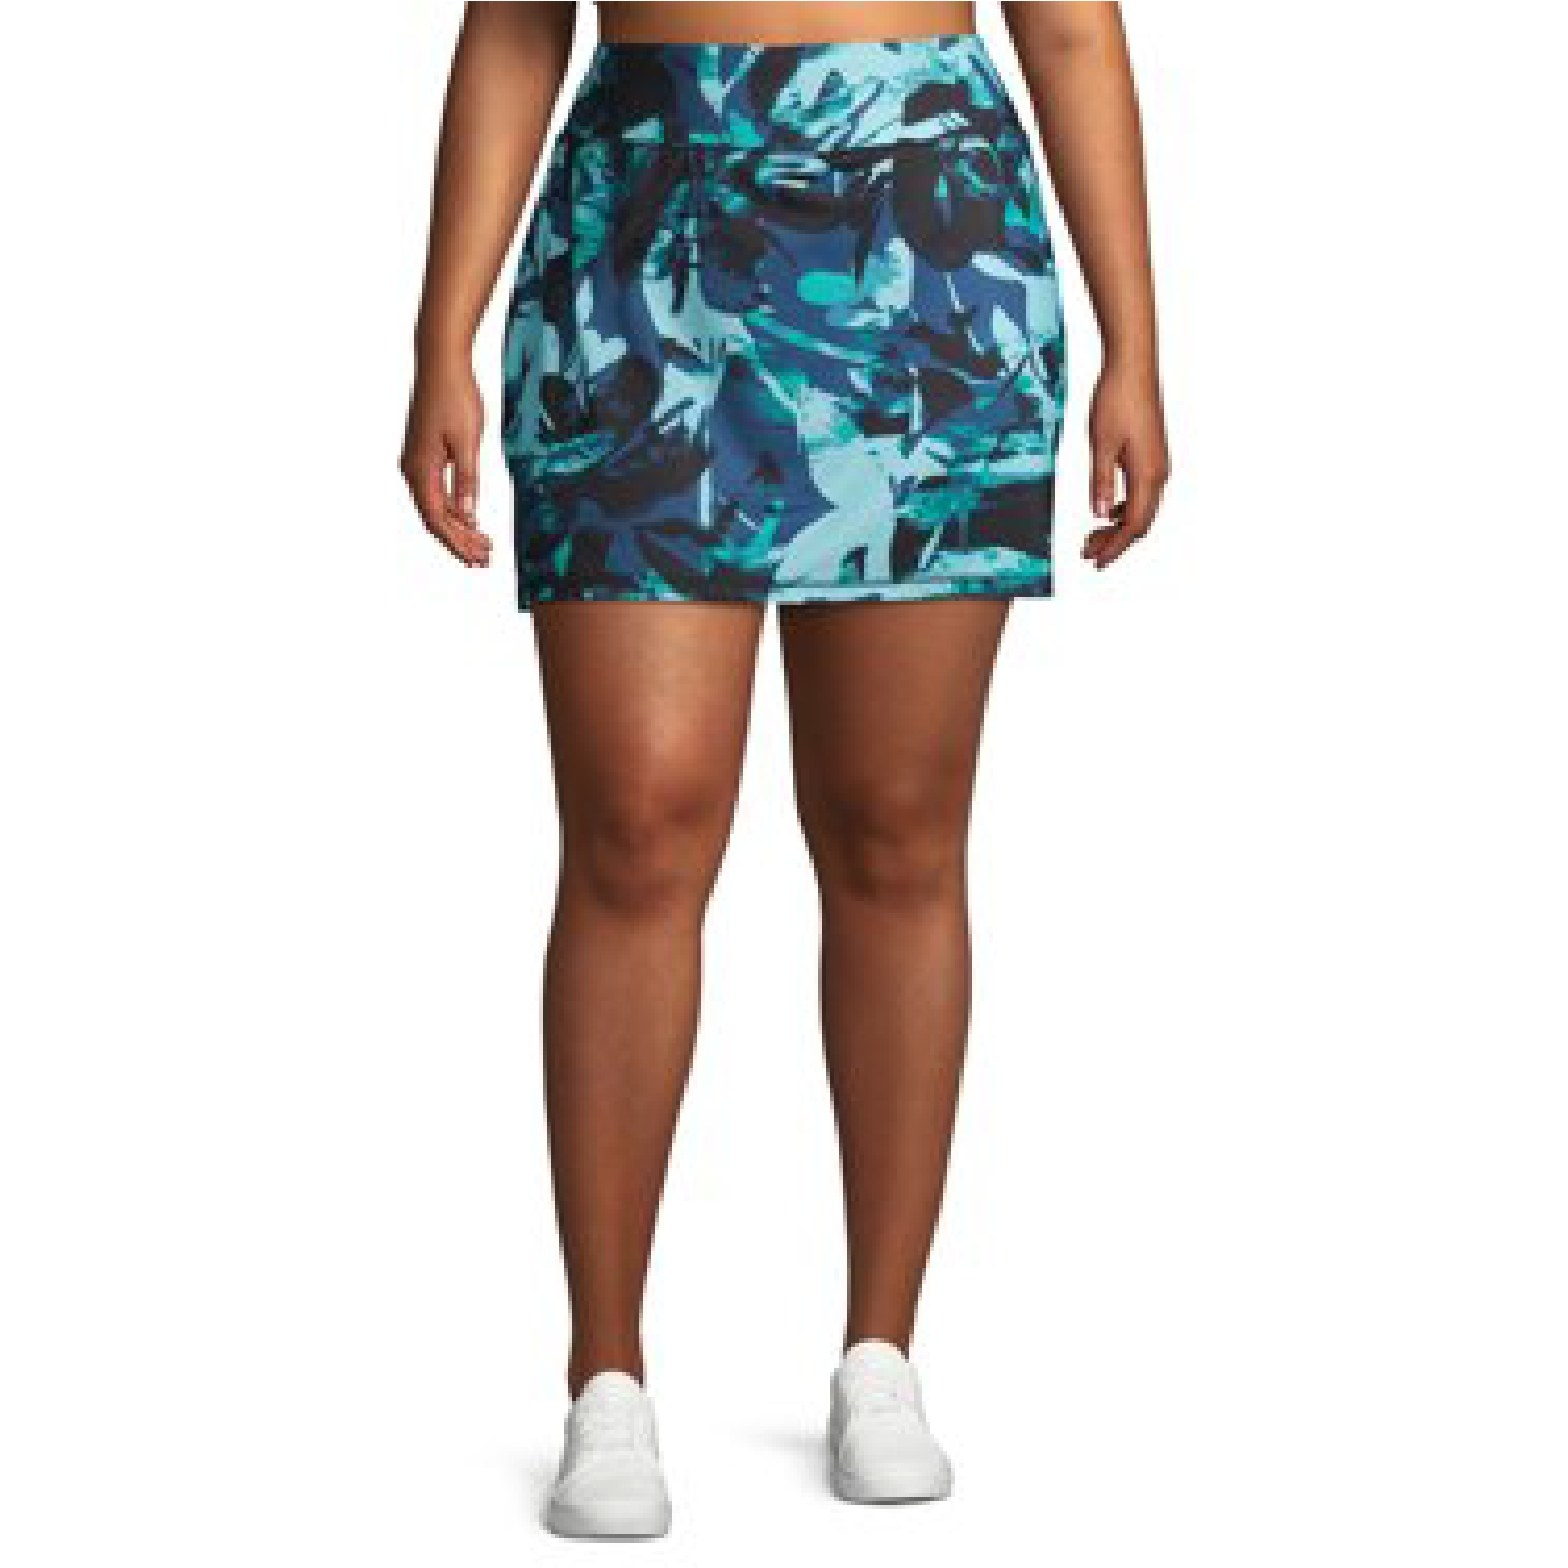 Model wearing the blue skort with tropical leaf pattern